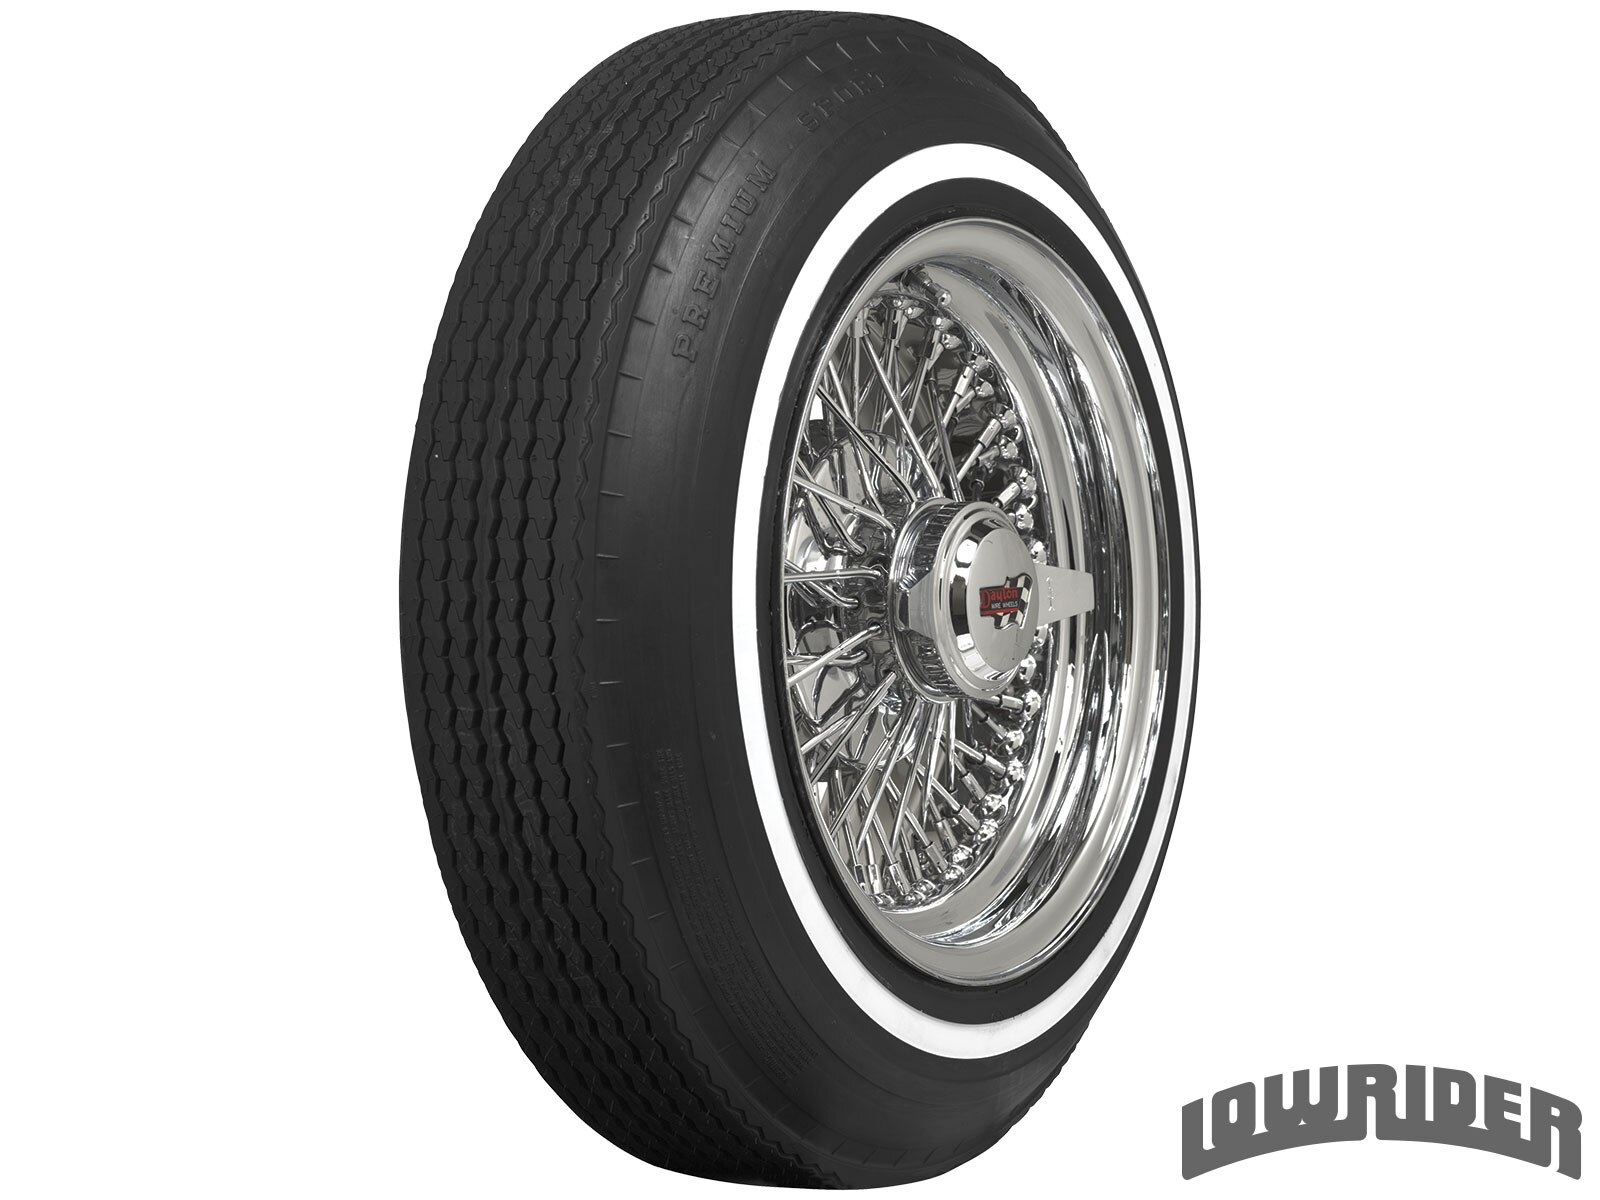 White Wall Tires: The Real Thing! - Lowrider Magazine